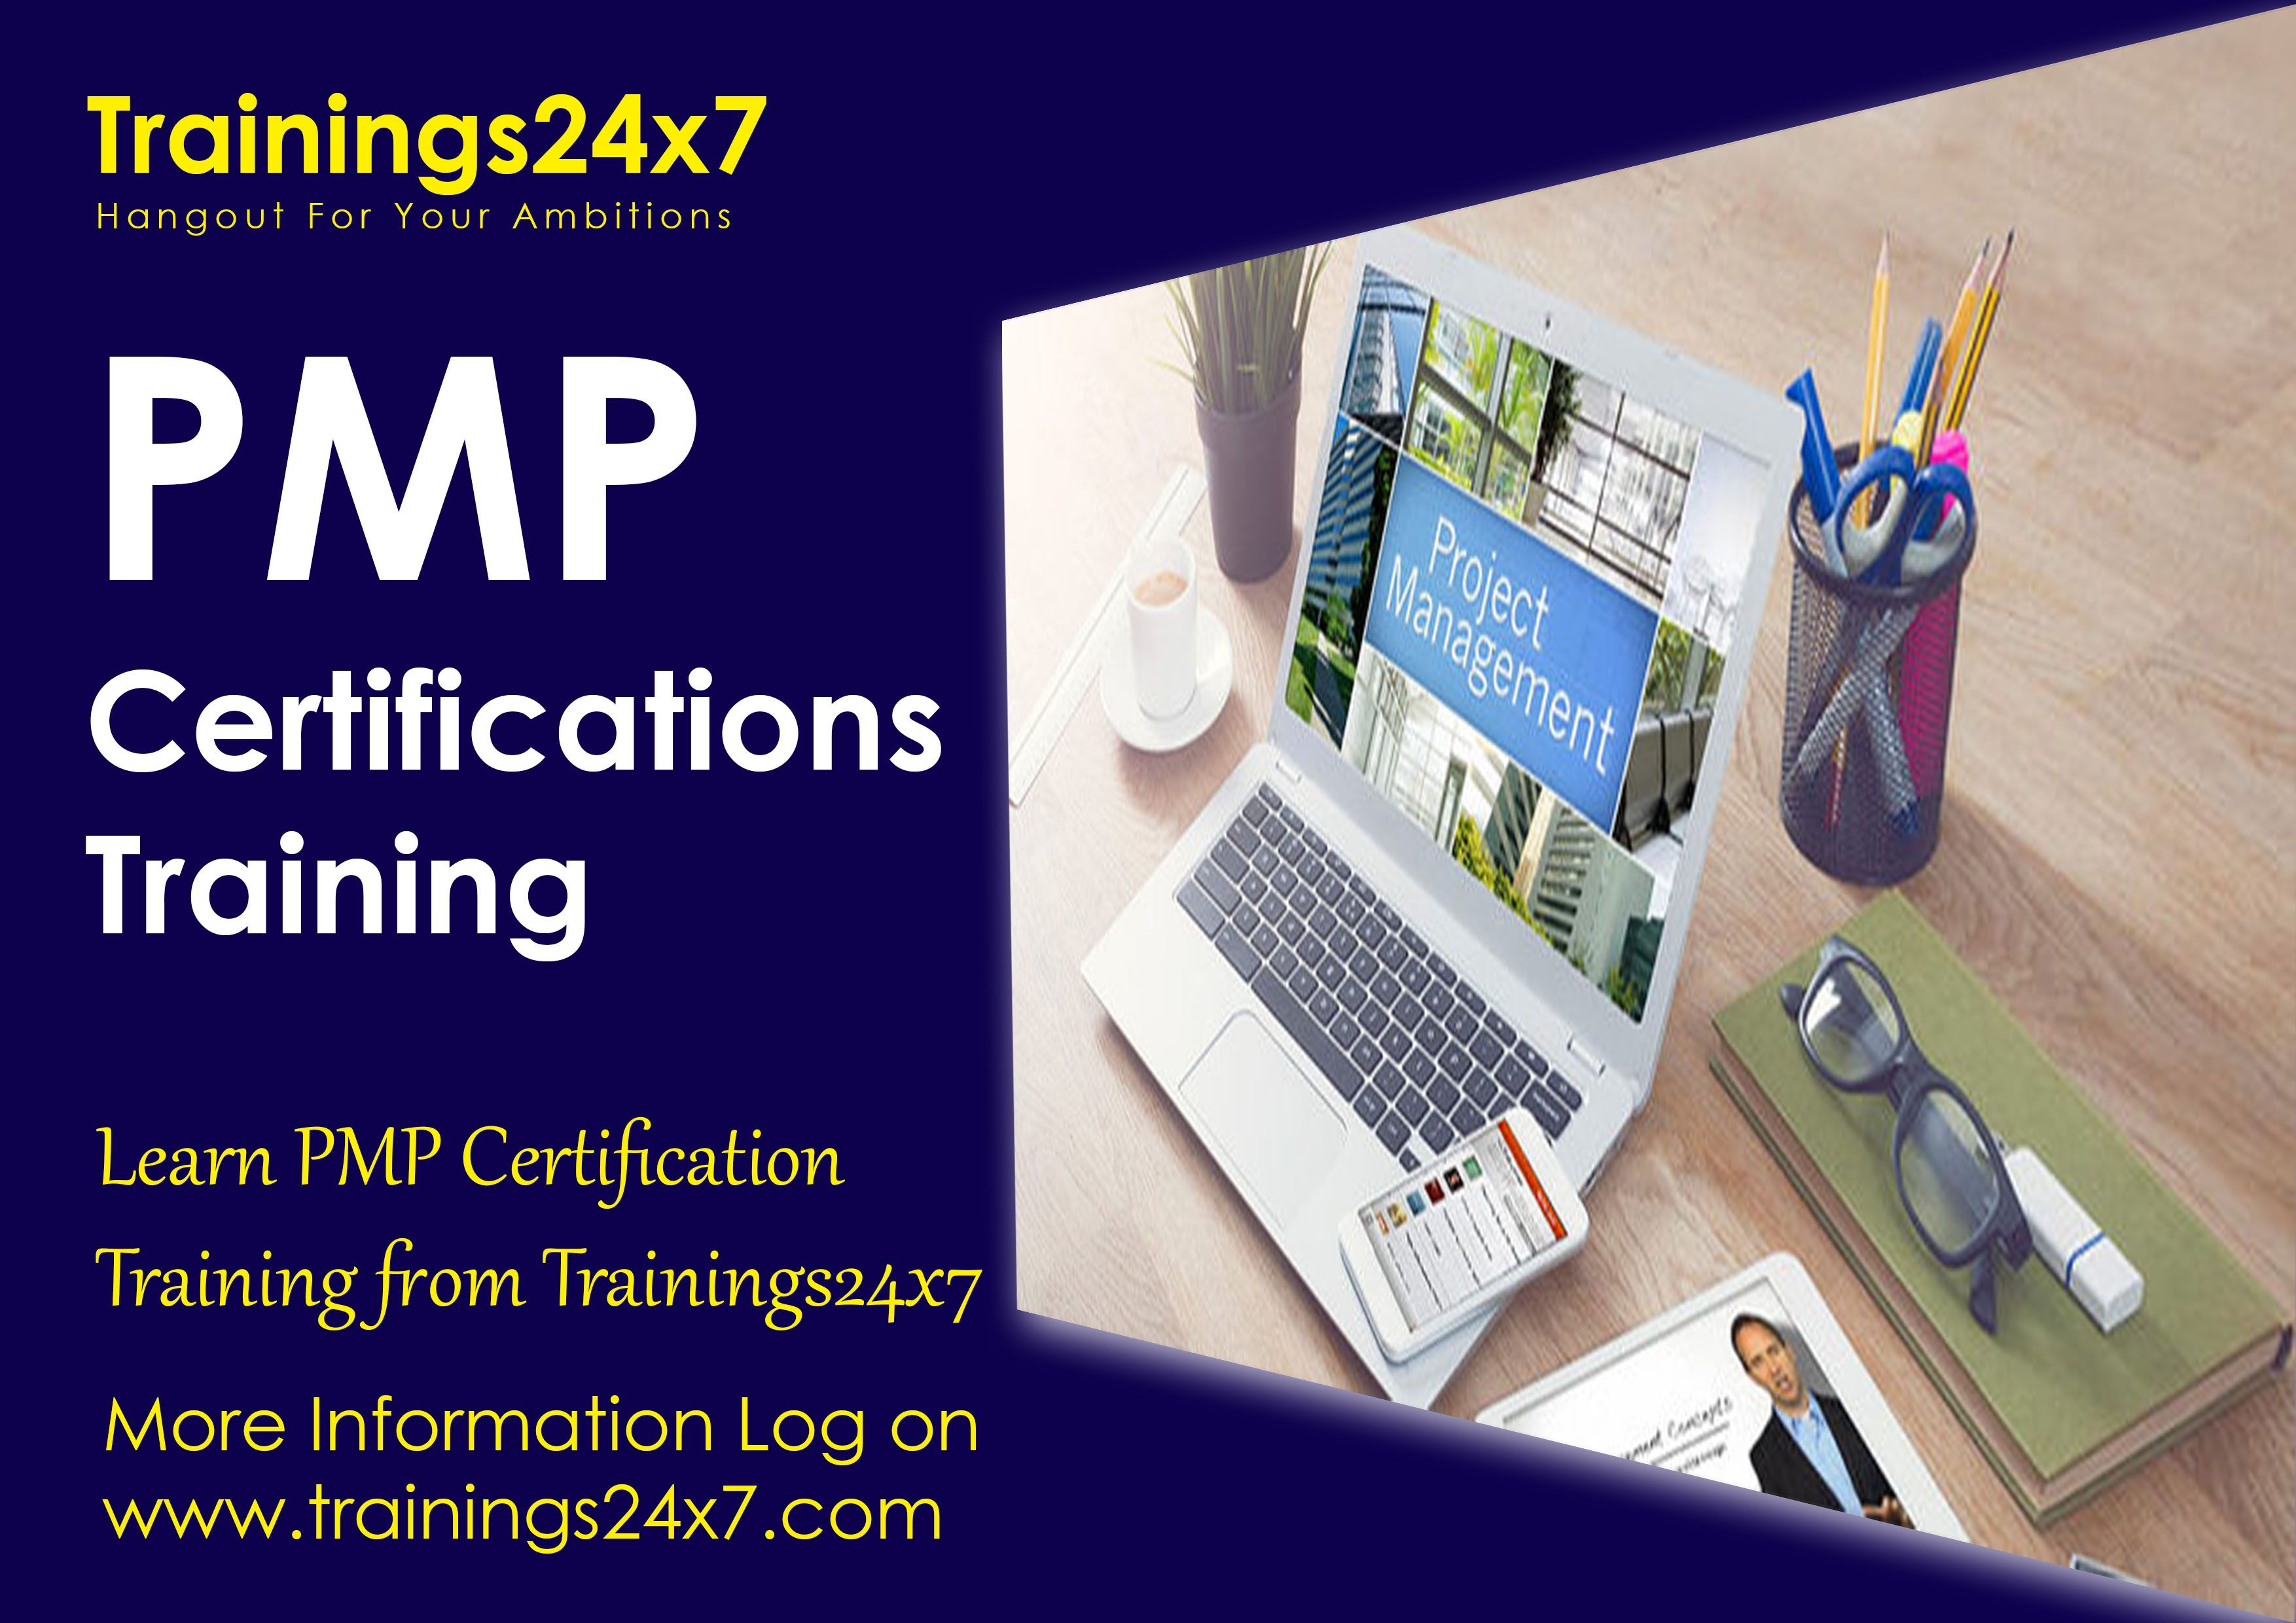 Trainings24x7 providing pmp 4 days classroom training trainings24x7 providing pmp 4 days classroom training trainings24x7pmp certification training 1betcityfo Images